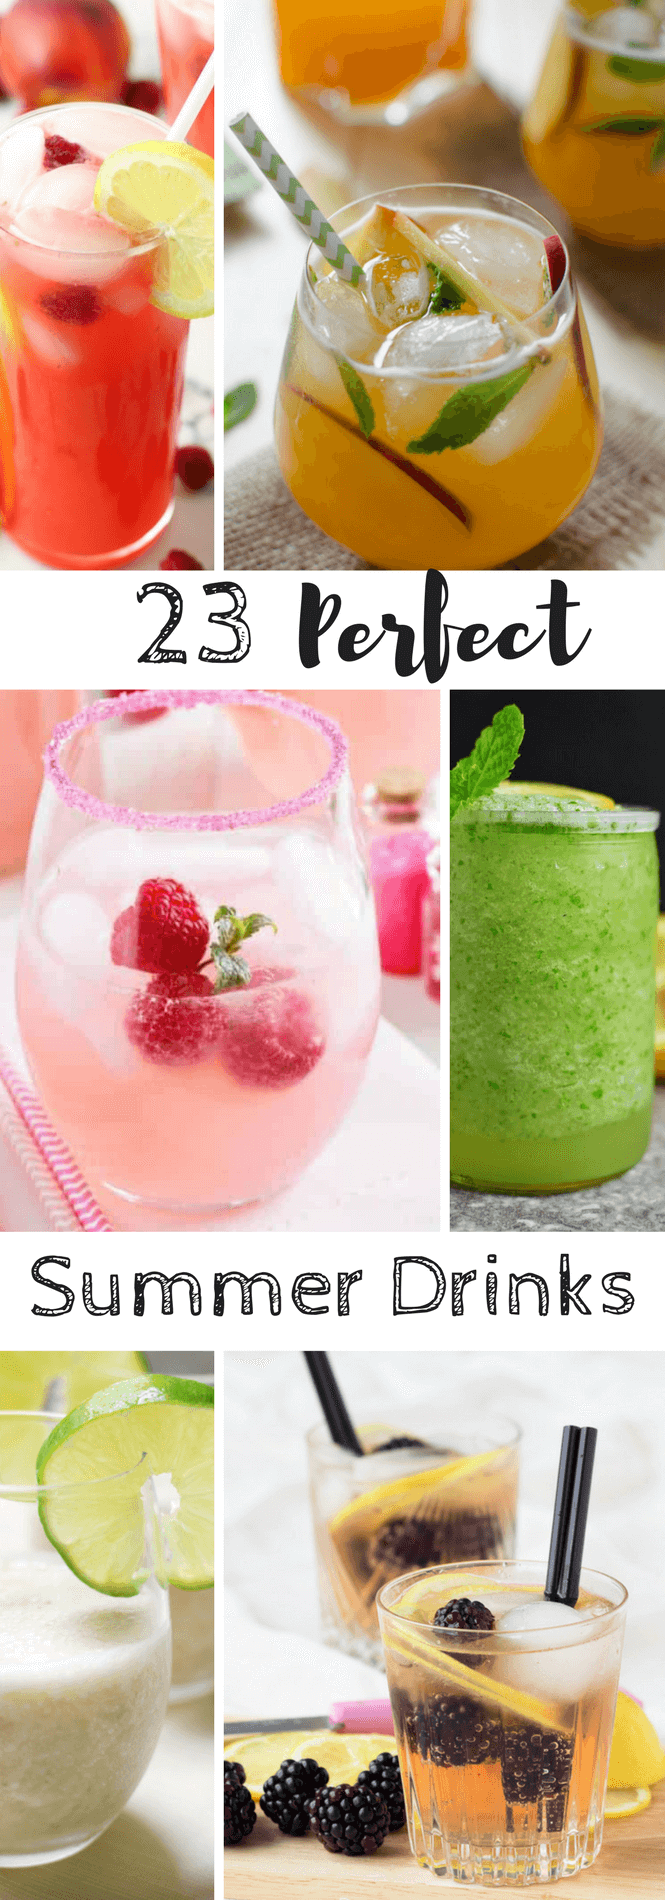 Summer drinks non-alcoholic